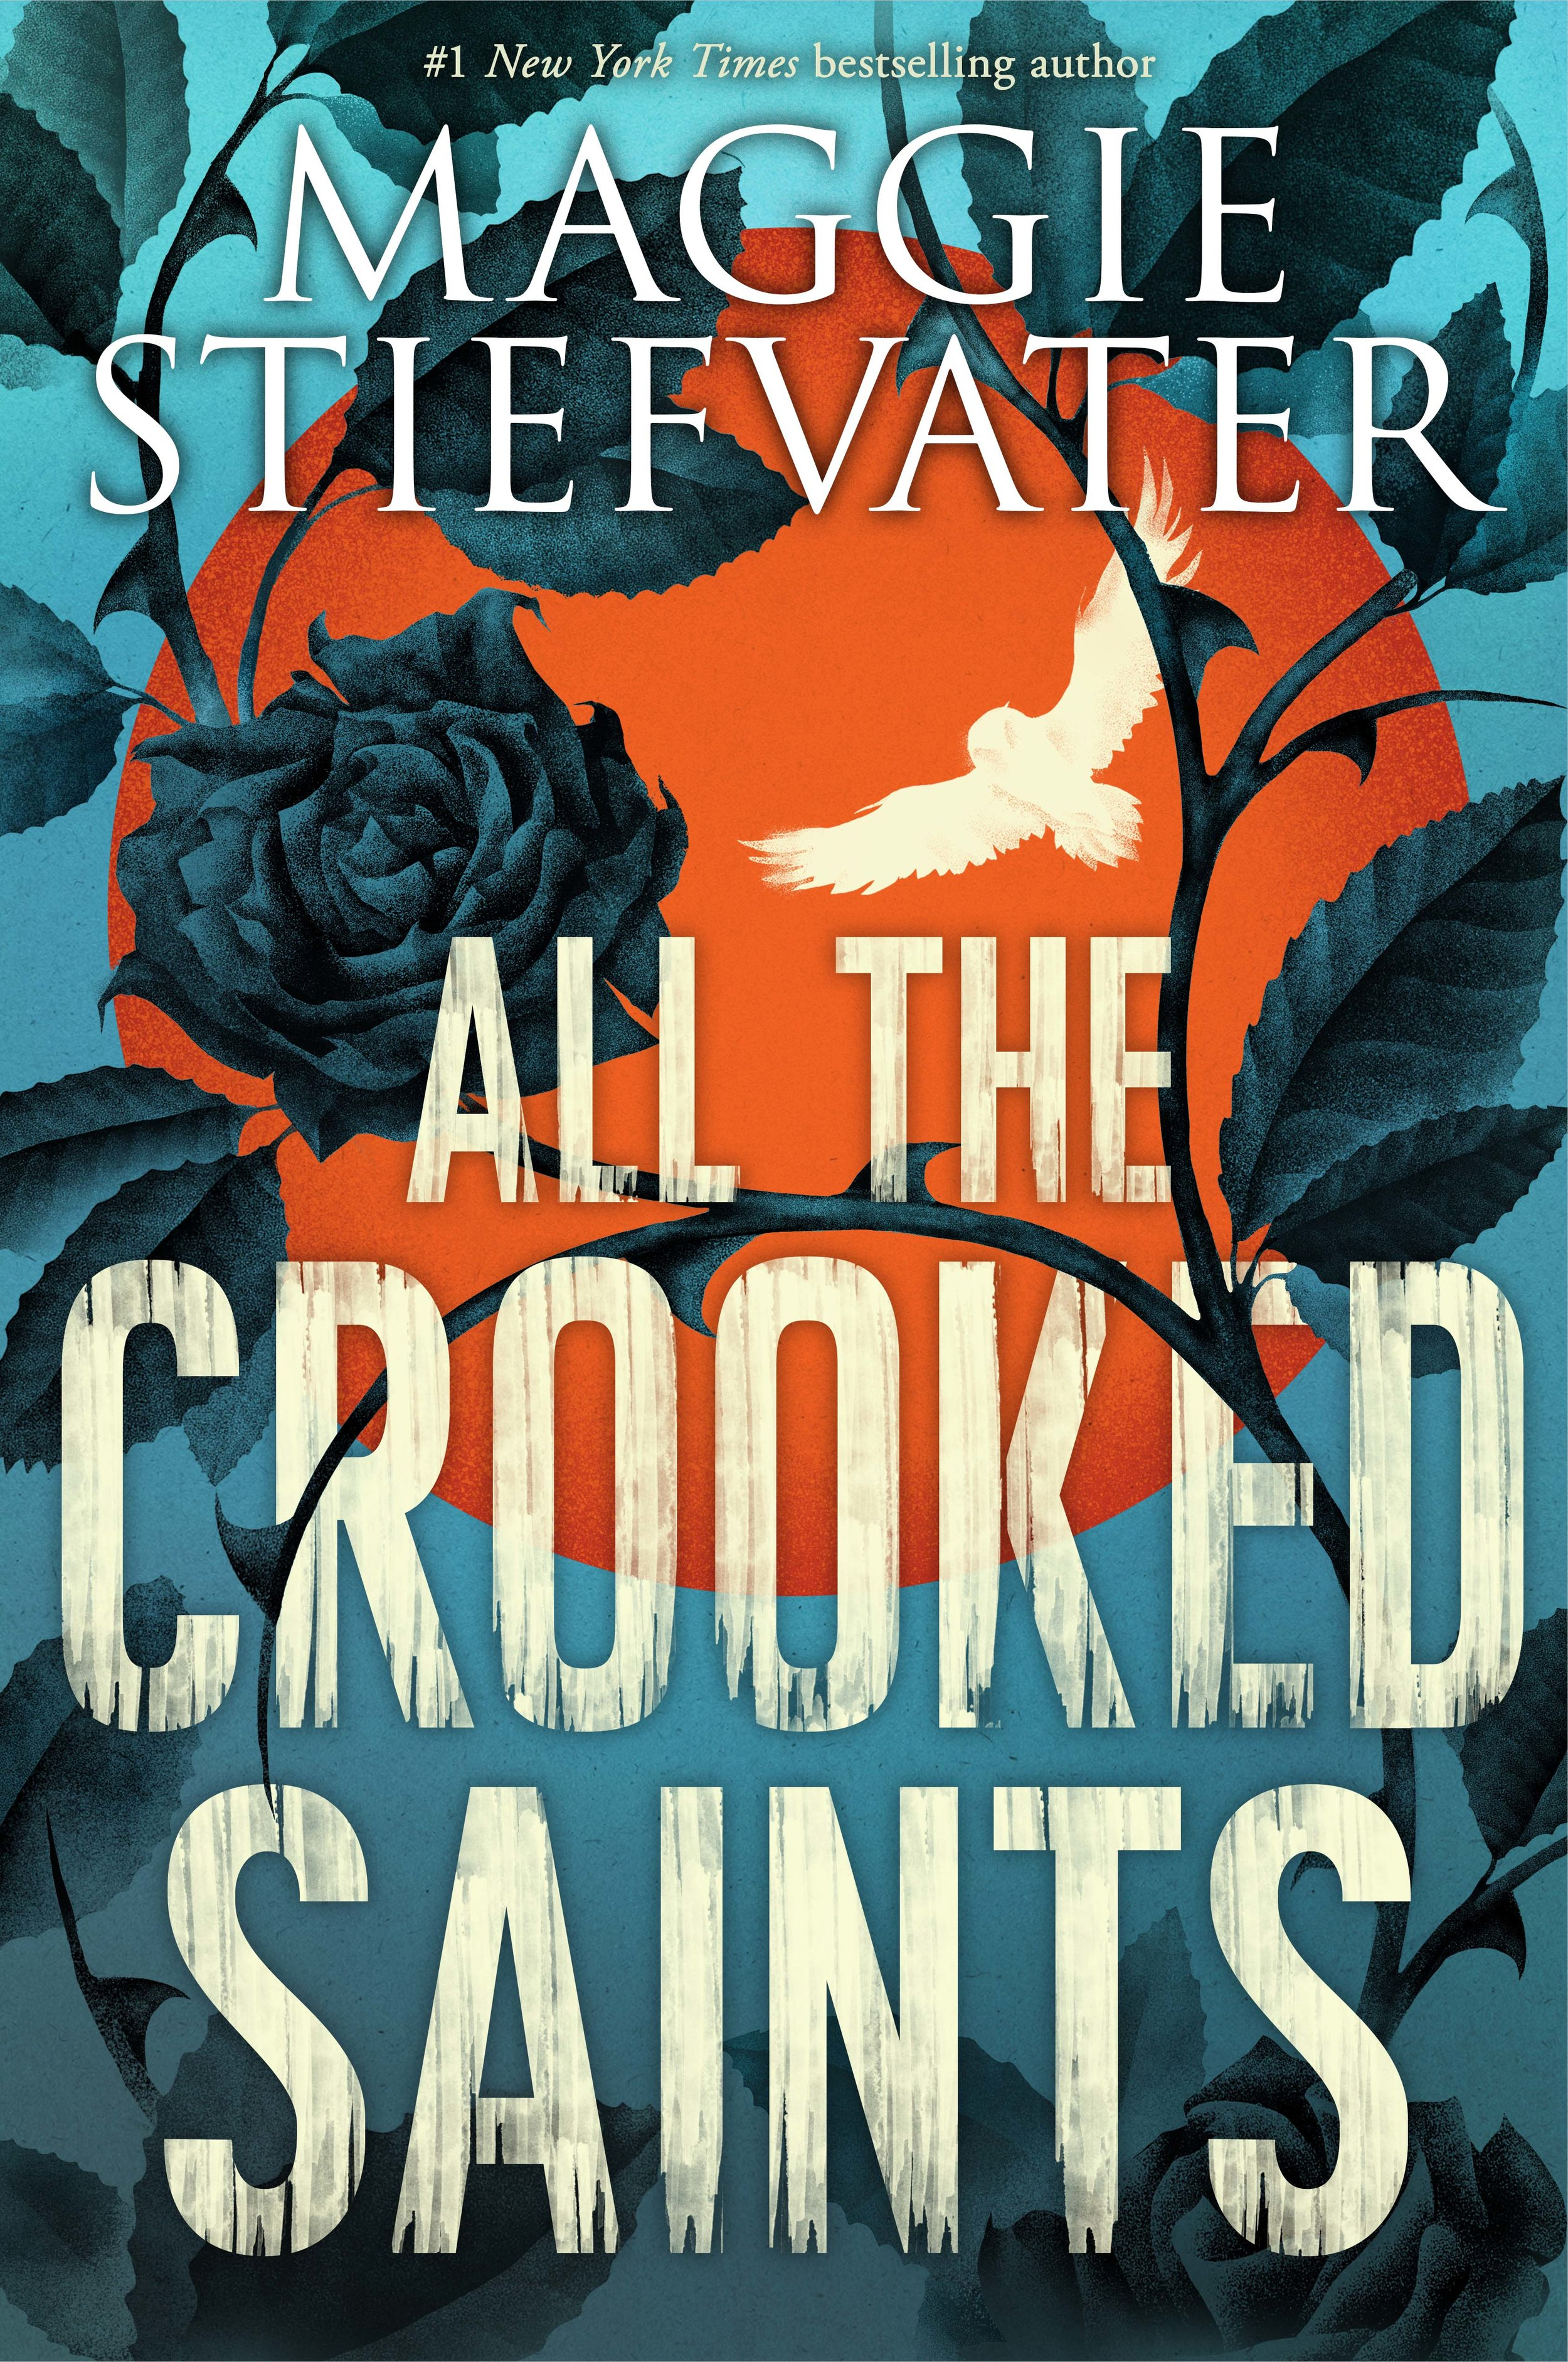 AllTheCrookedSaints_cover.jpg